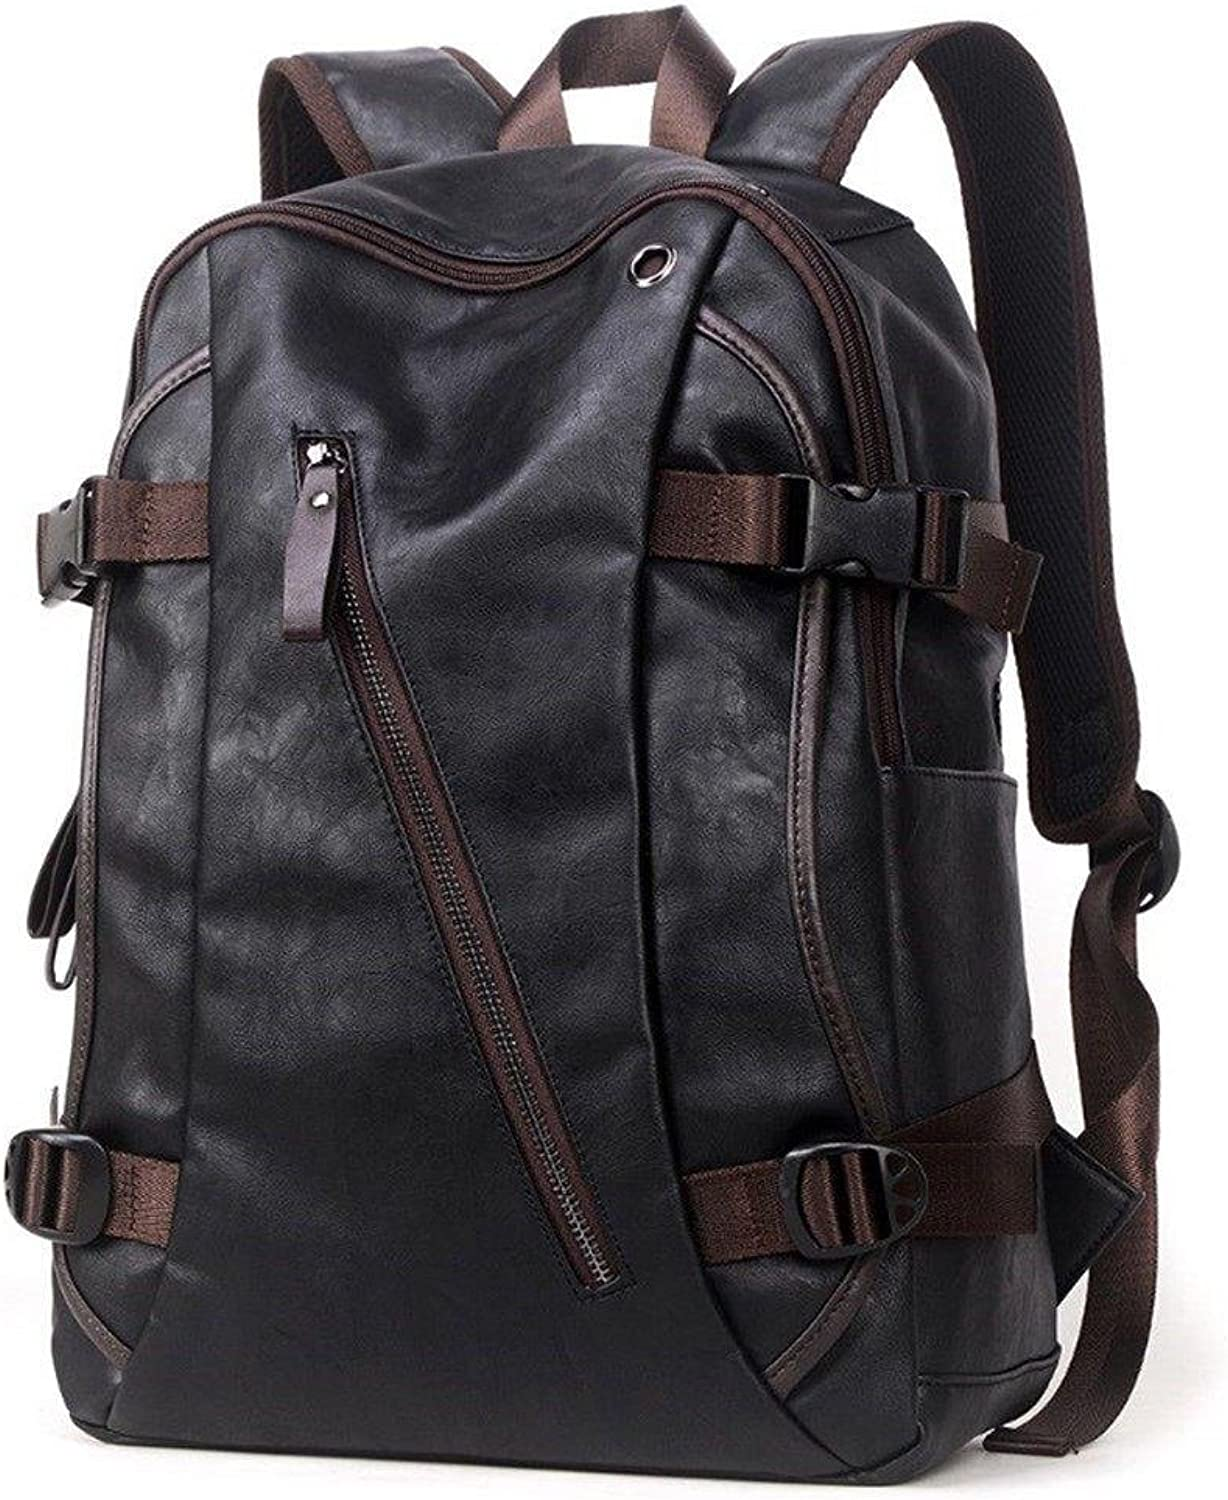 Black Unisex Stylish Backpack Bag of Artificial Leather for College, Office and School (15.5 INCH)